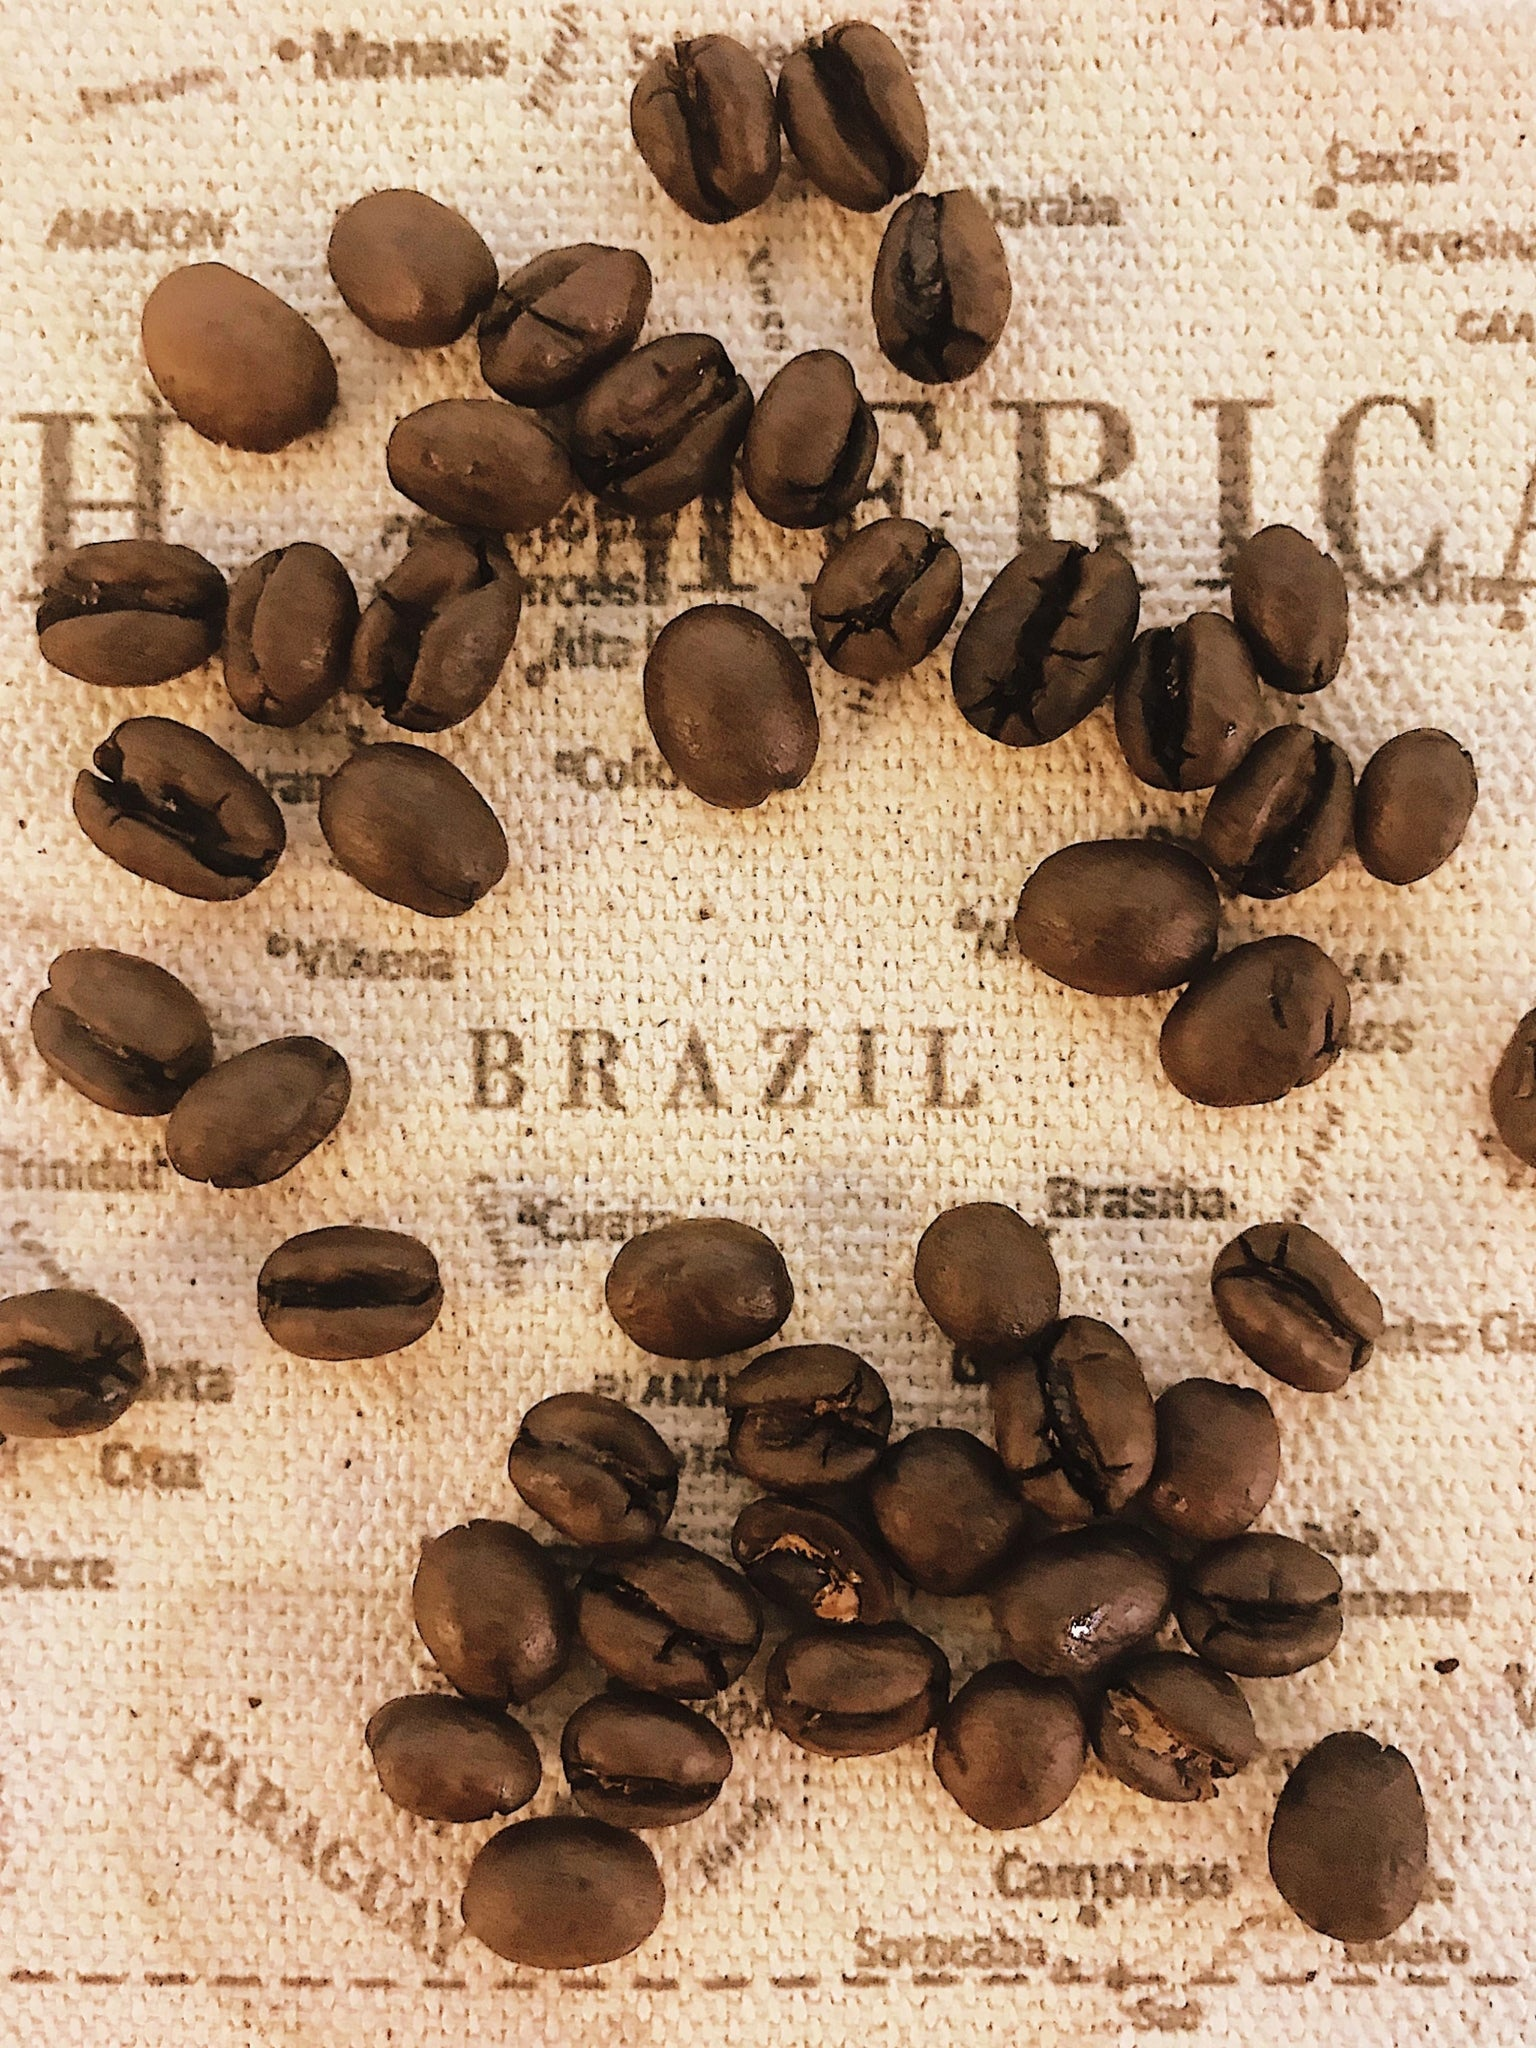 BRAZIL ALTA MOGIANA SAO FRANCISCO ESTATE MOKKA PEABERRY